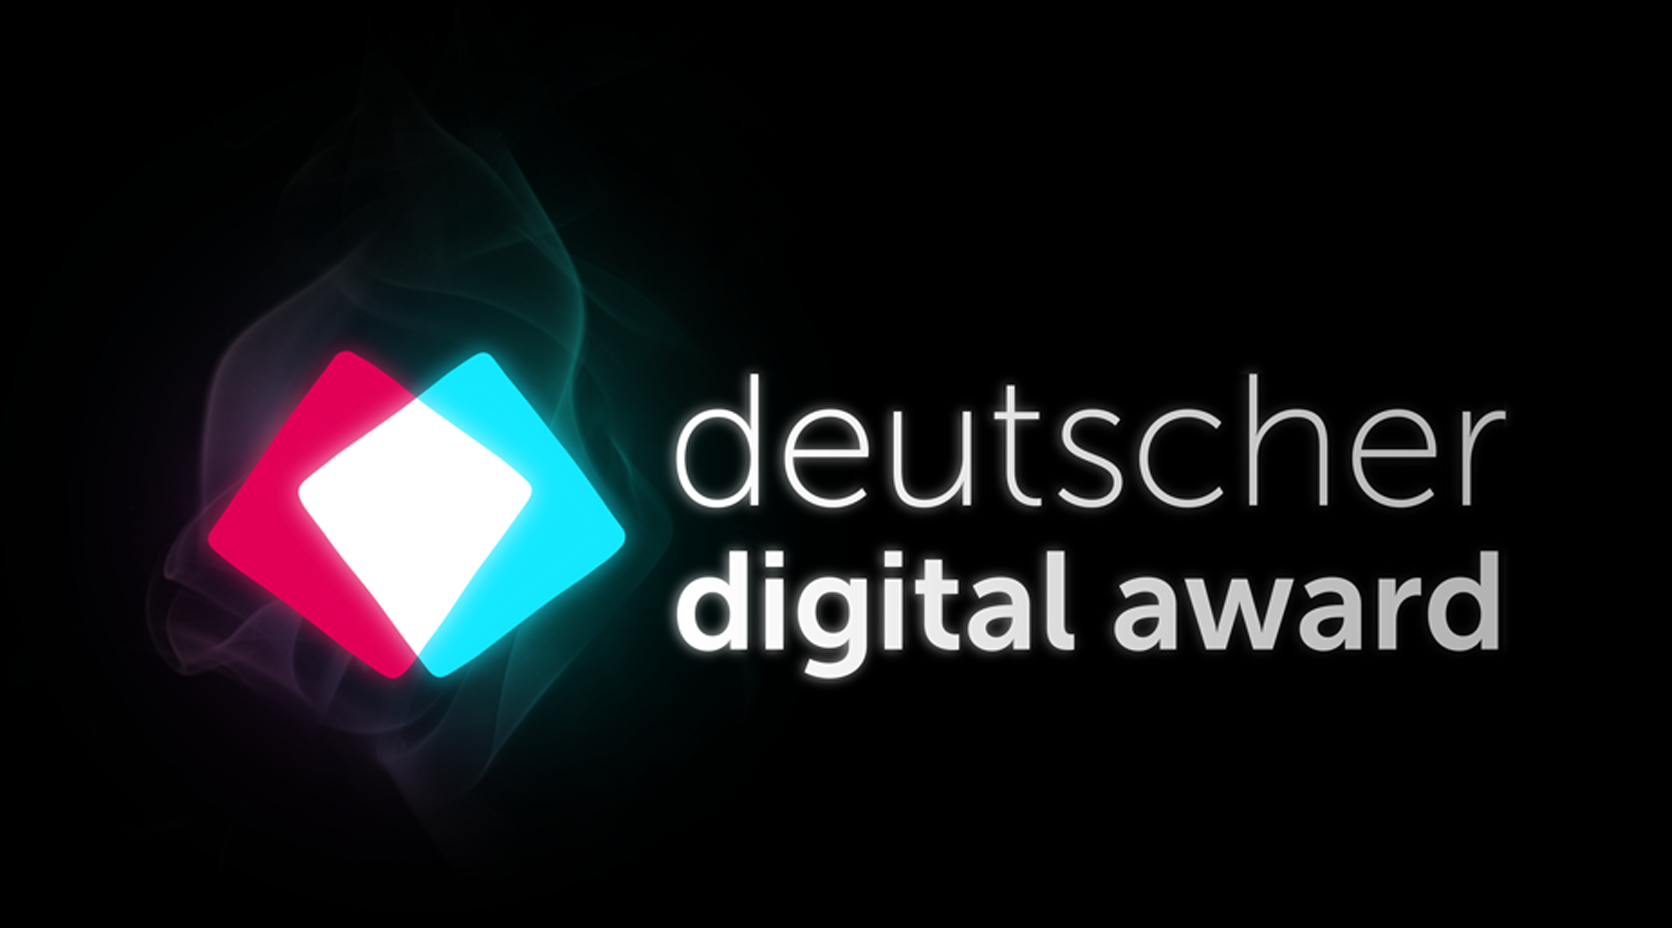 EnBW deutscher digital award winner